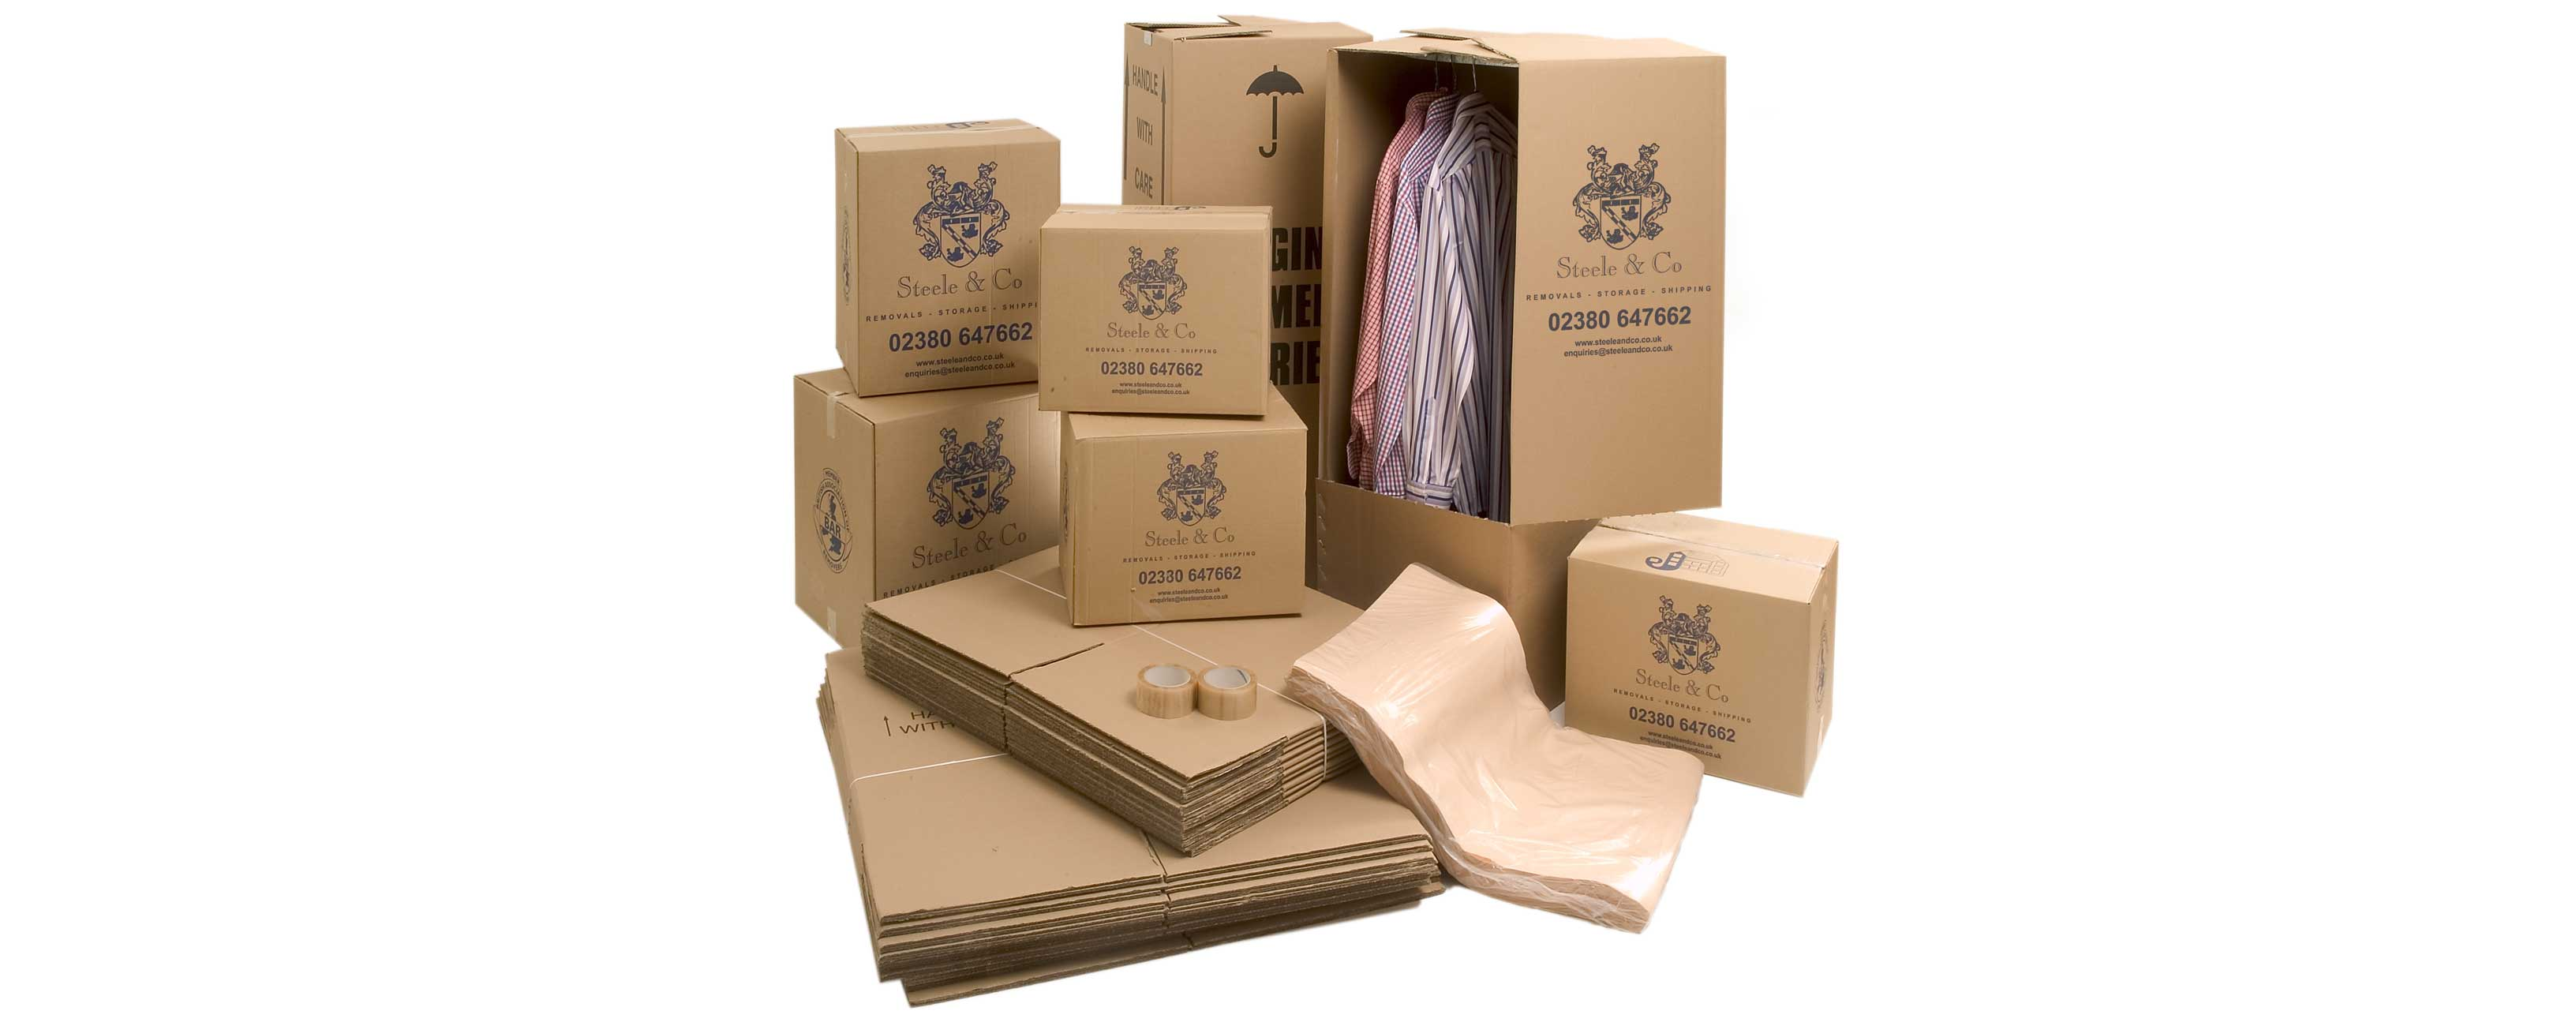 Removal Boxes for House moves